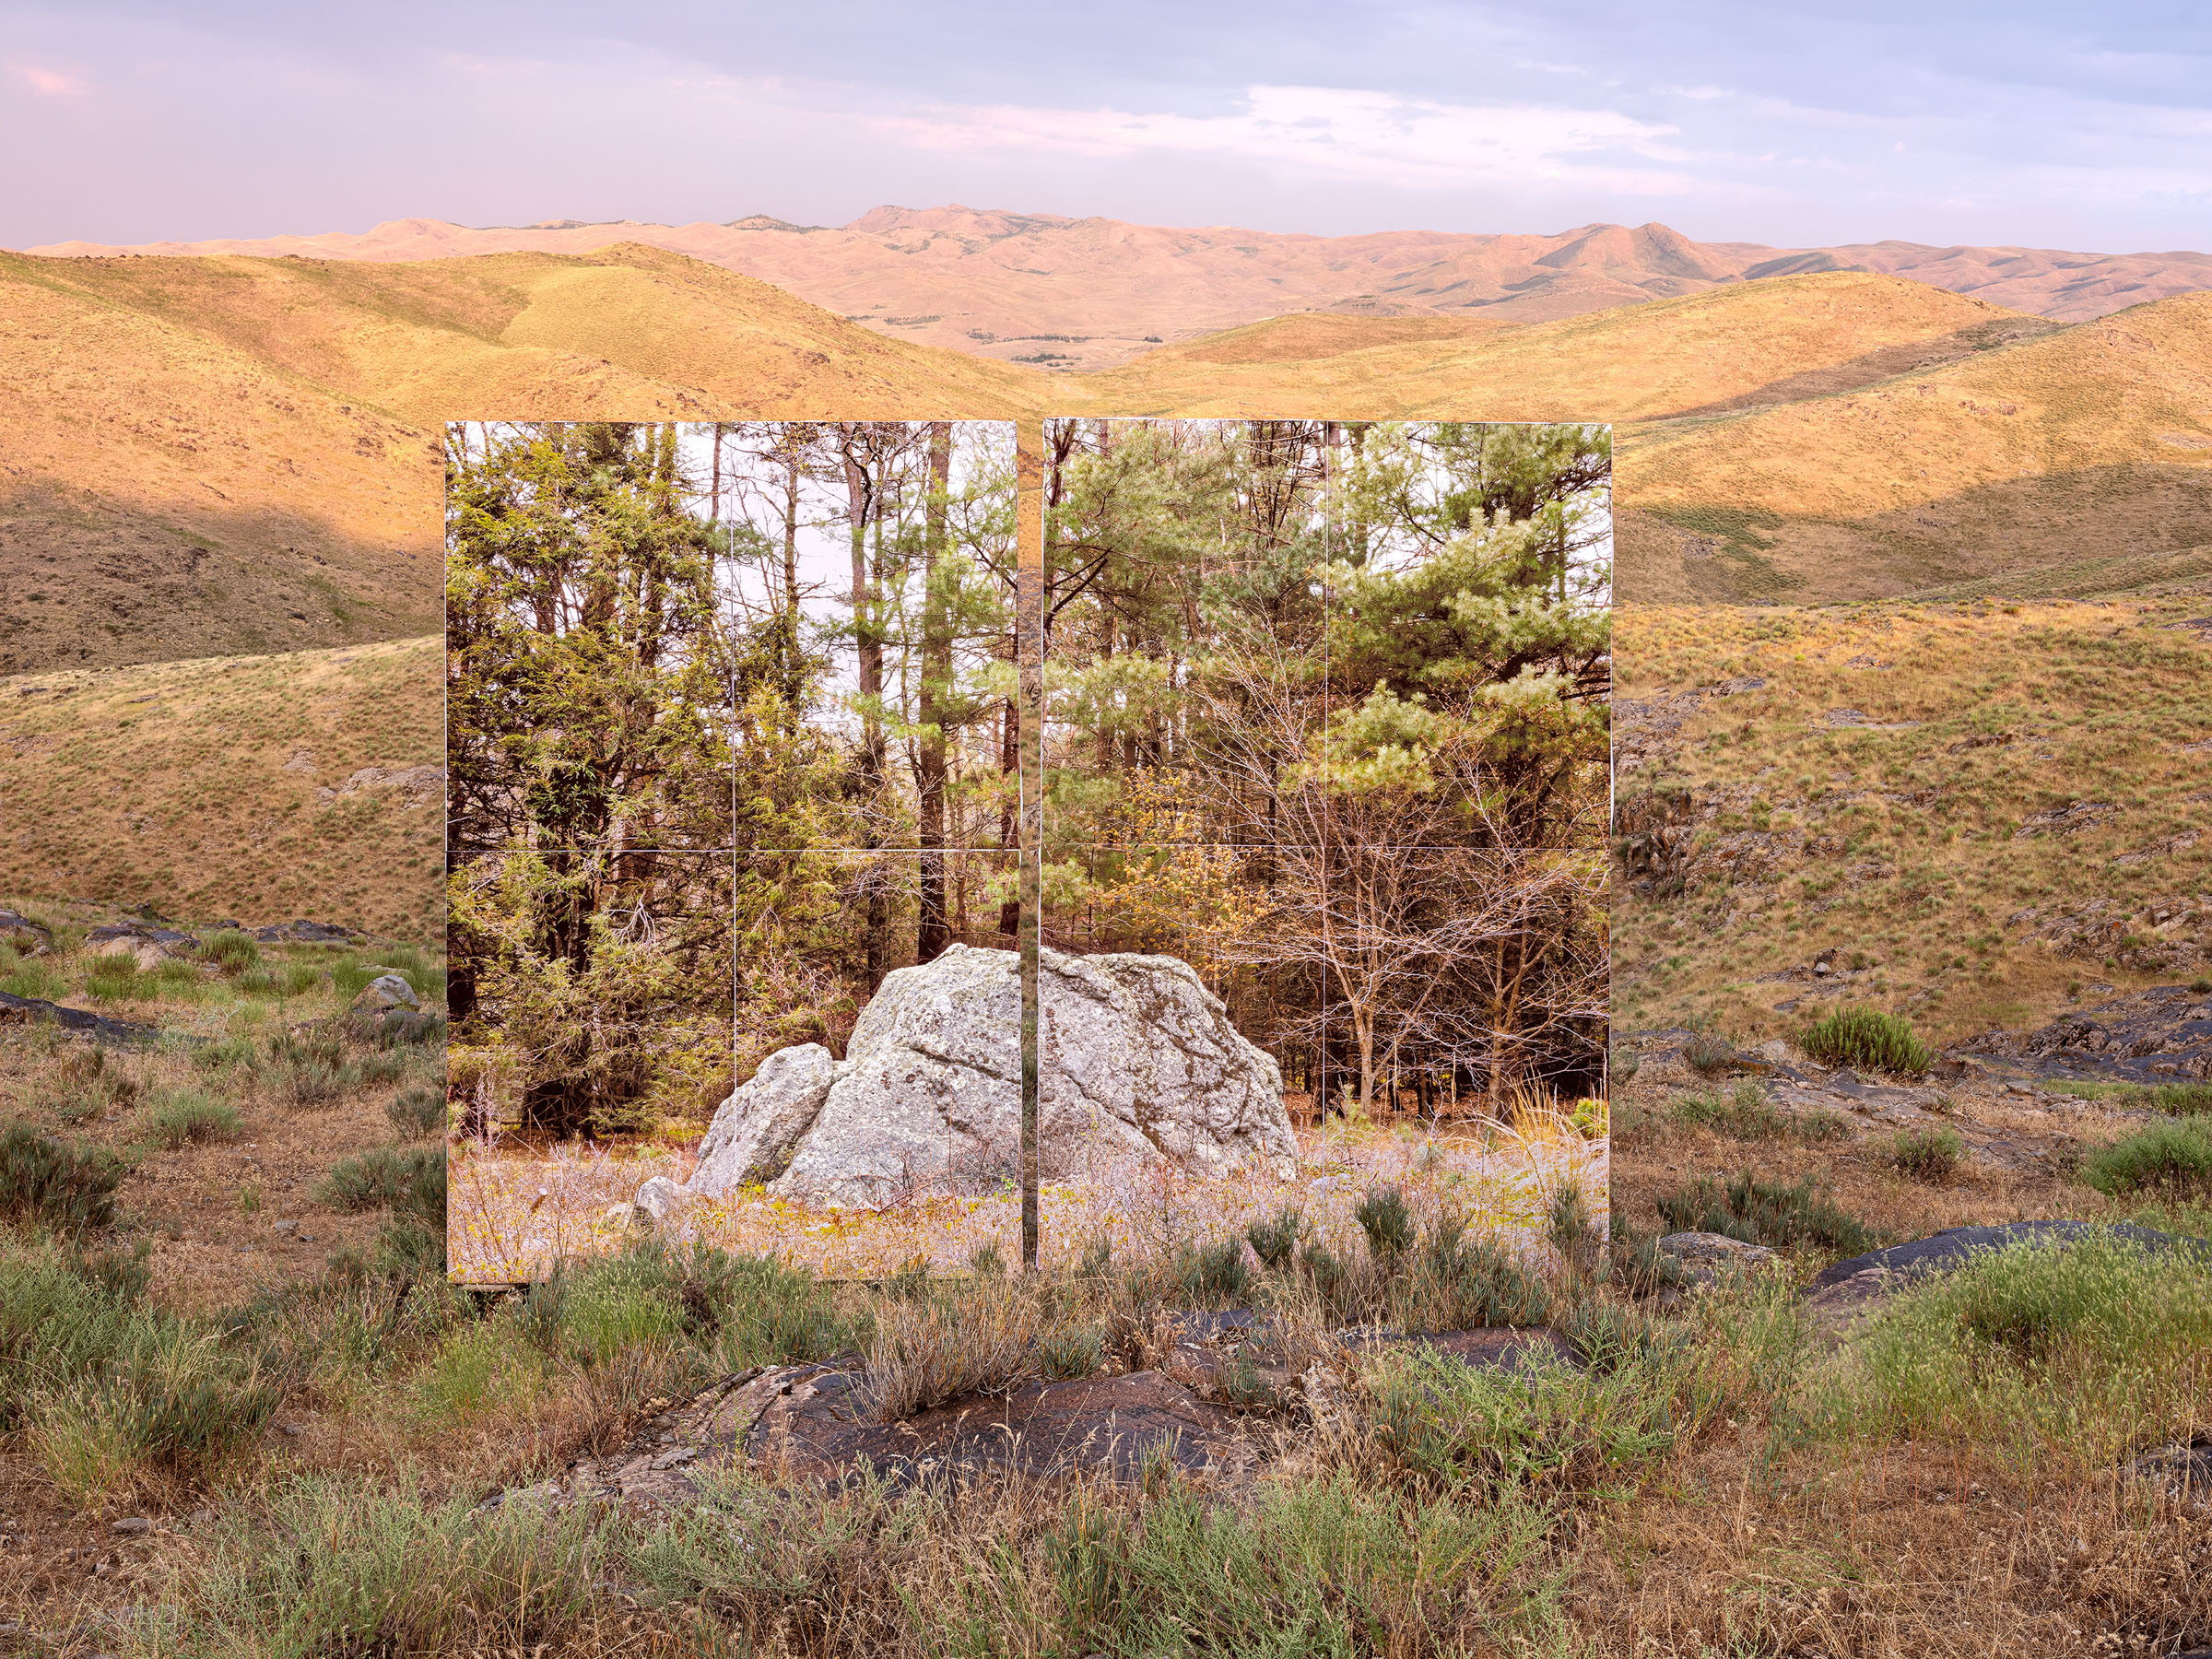 Gohar Dashti, Untitled 3, from the series Land/s, 2019. Courtesy of the artist